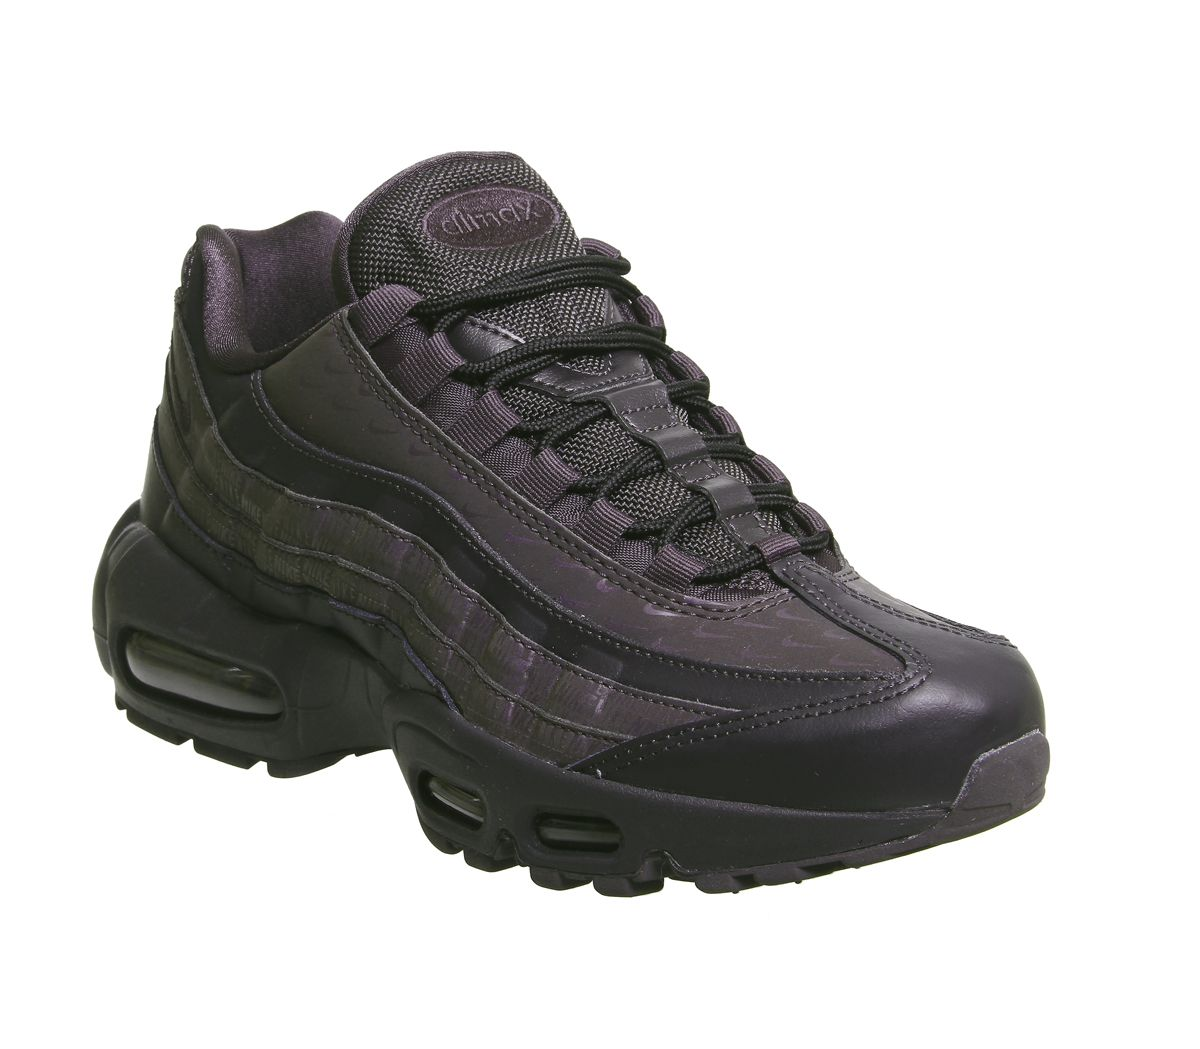 innovative design 3cc97 3c054 Nike Air Max 95 Trainers Oil Grey Lx - Hers trainers